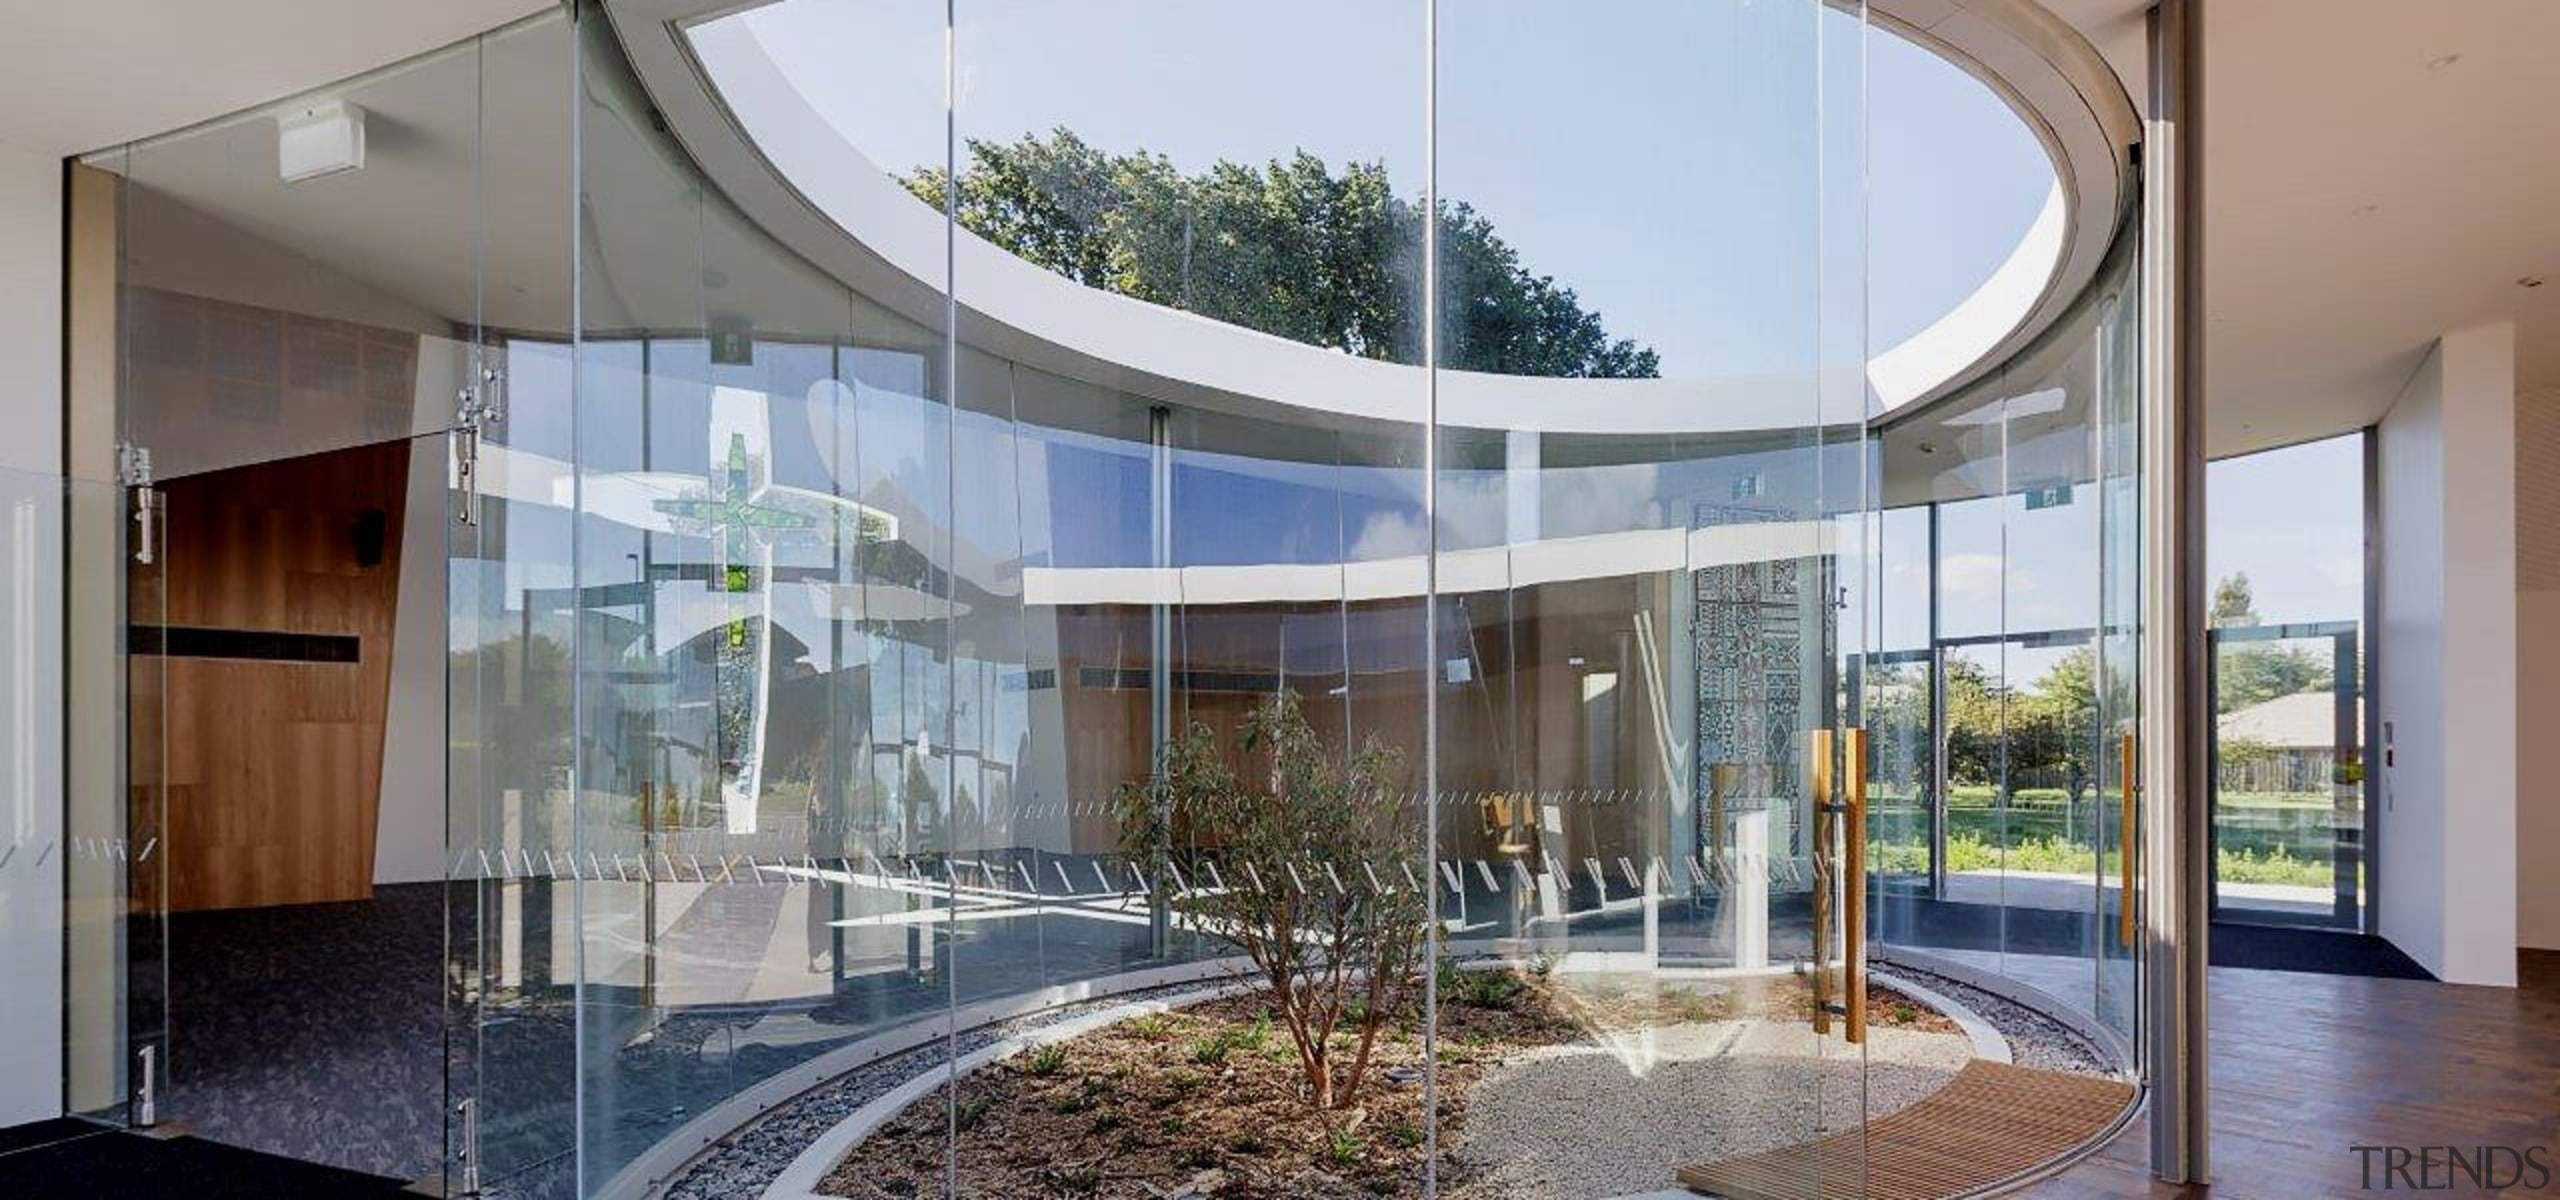 Sisters of Mercy 3 - architecture | building architecture, building, commercial building, facade, glass, headquarters, home, house, interior design, mixed-use, property, real estate, room, shade, gray